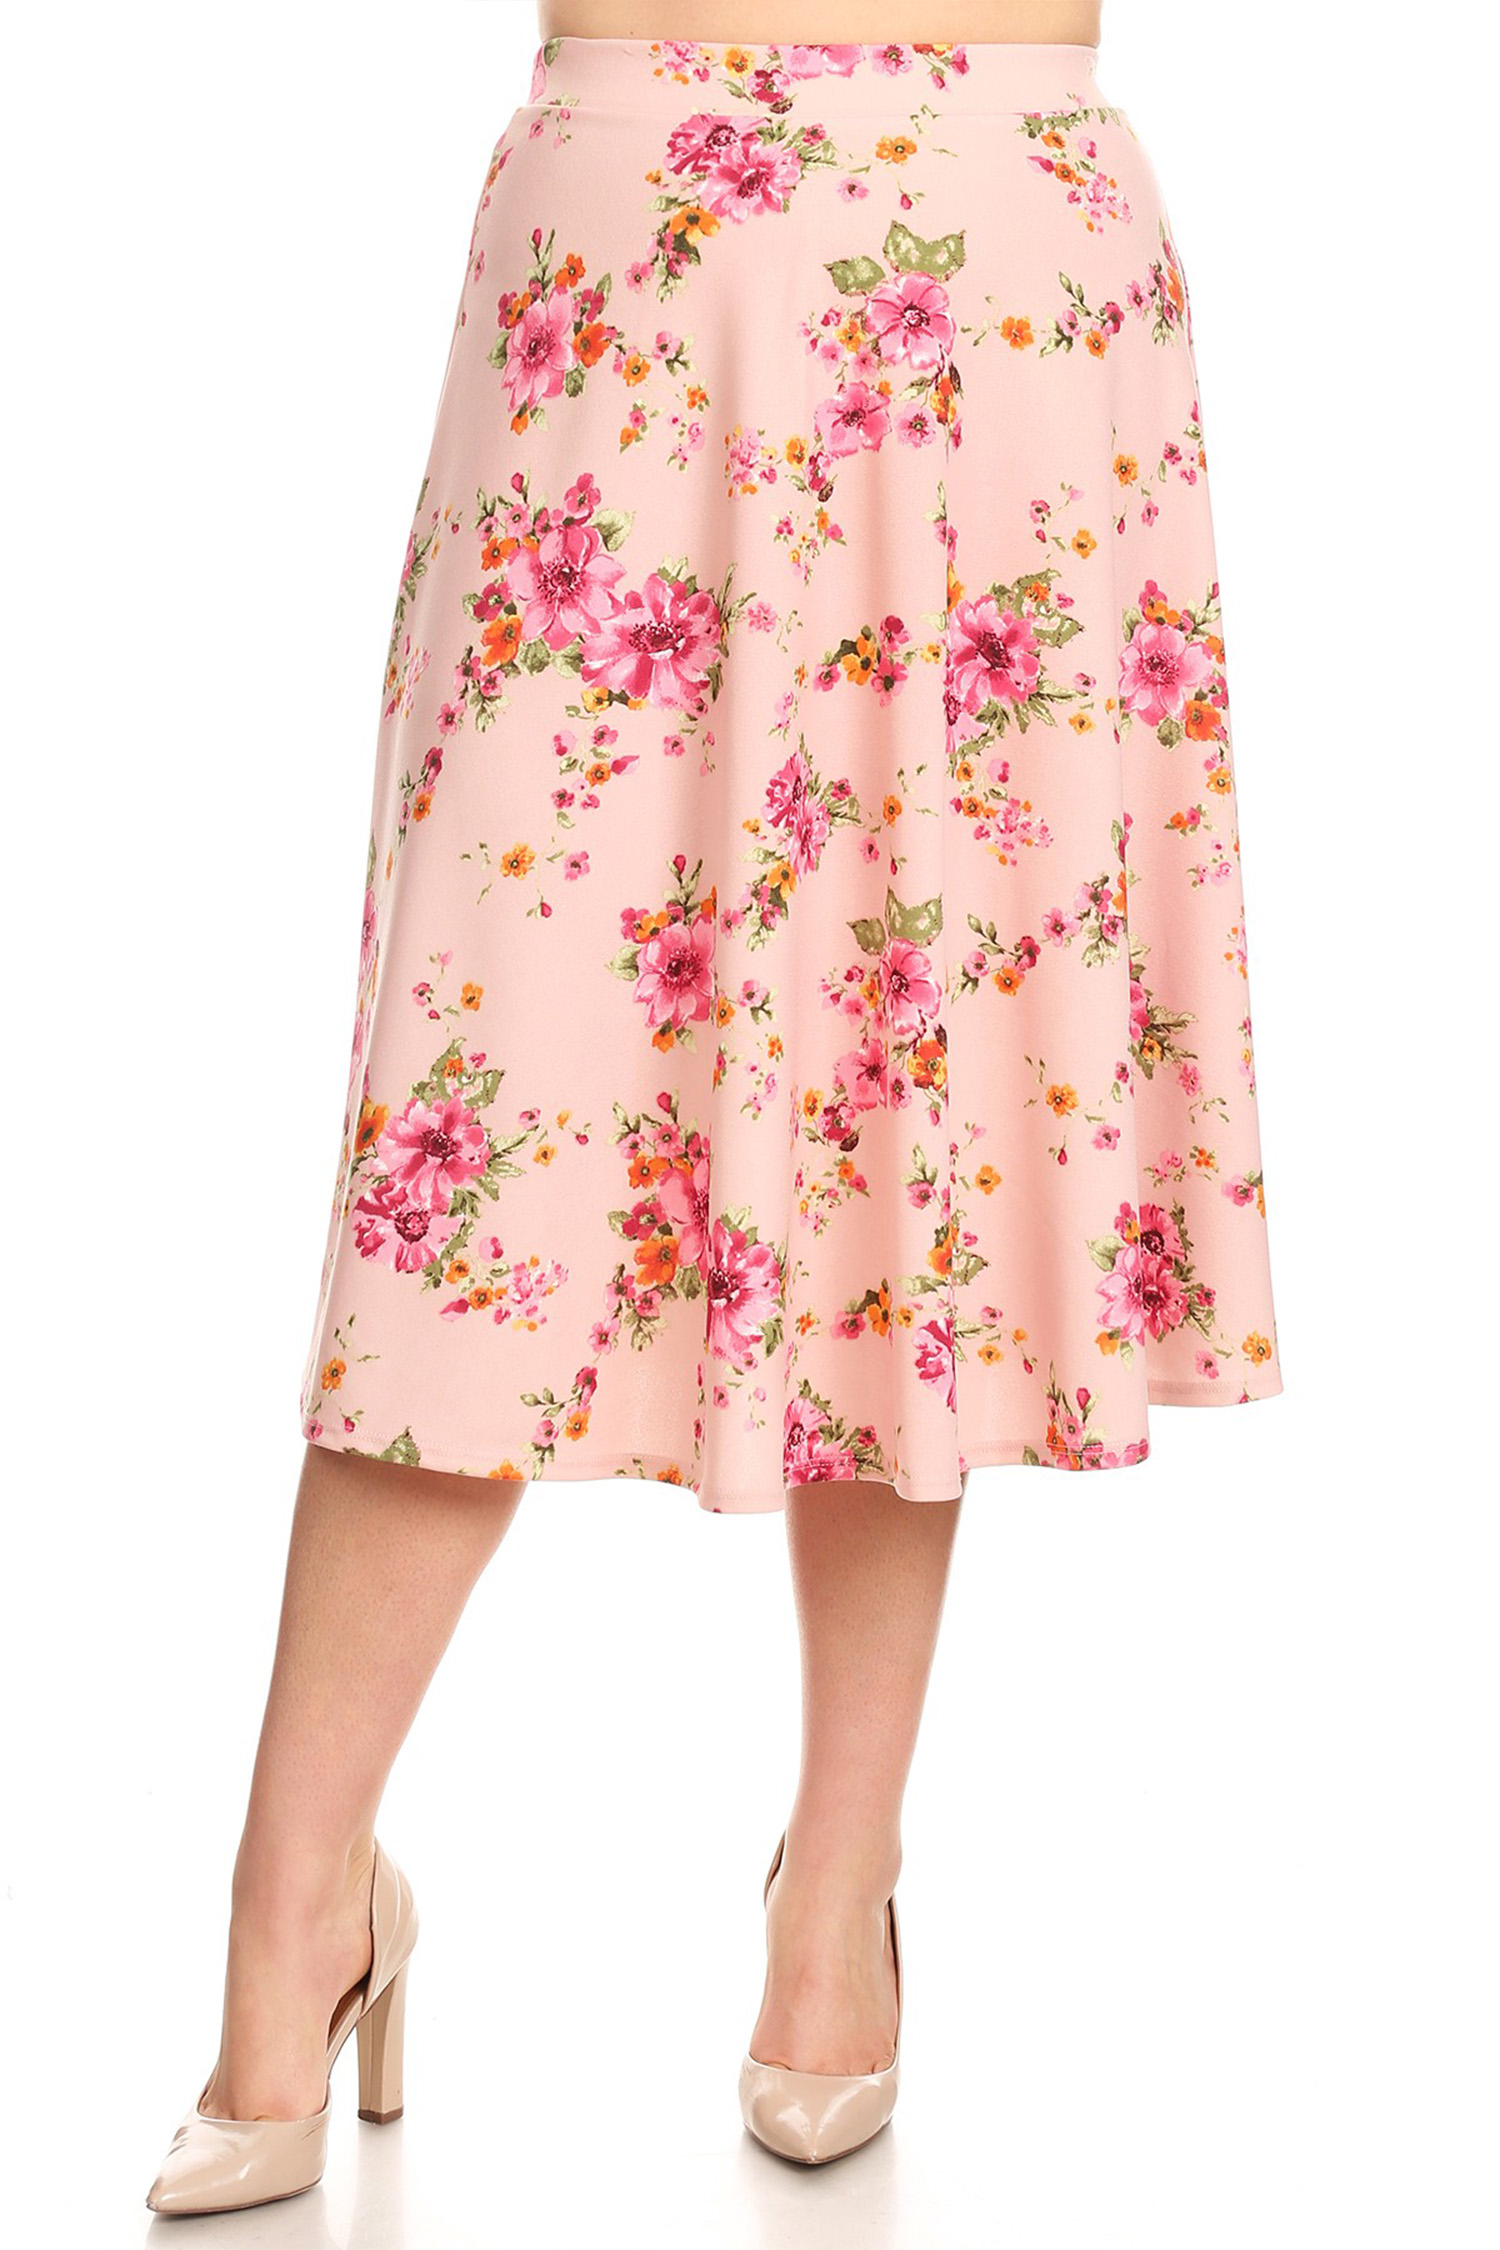 Women's Plus Size Floral Pattern Skirt